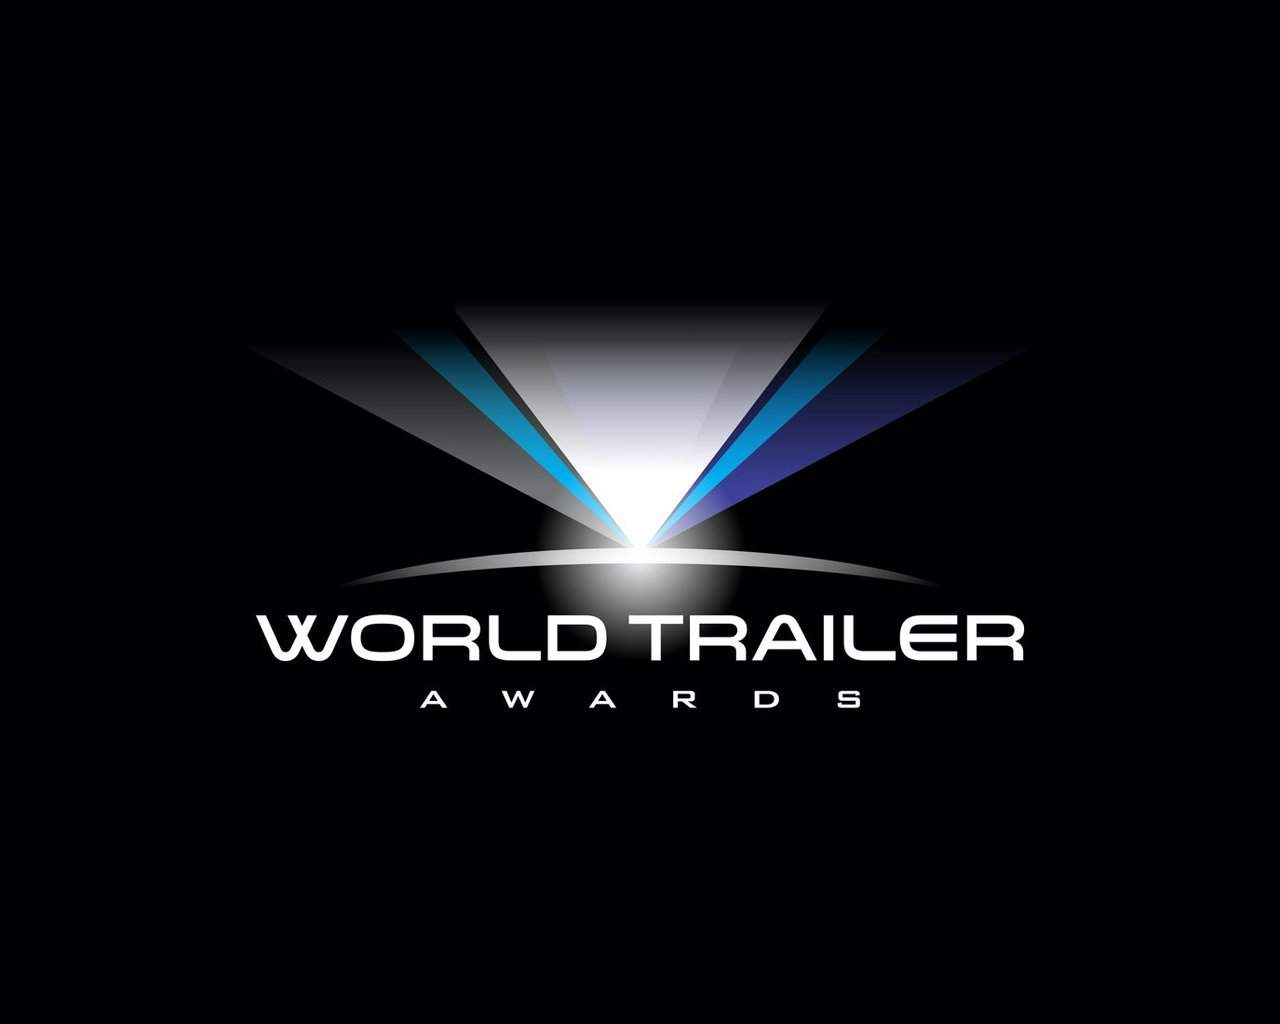 Scene News: World Trailer Awards 2022 Announces Inaugural Competition Honouring the World's Top Creatives in Entertainment Marketing ~ OPEN FOR ENTRIES